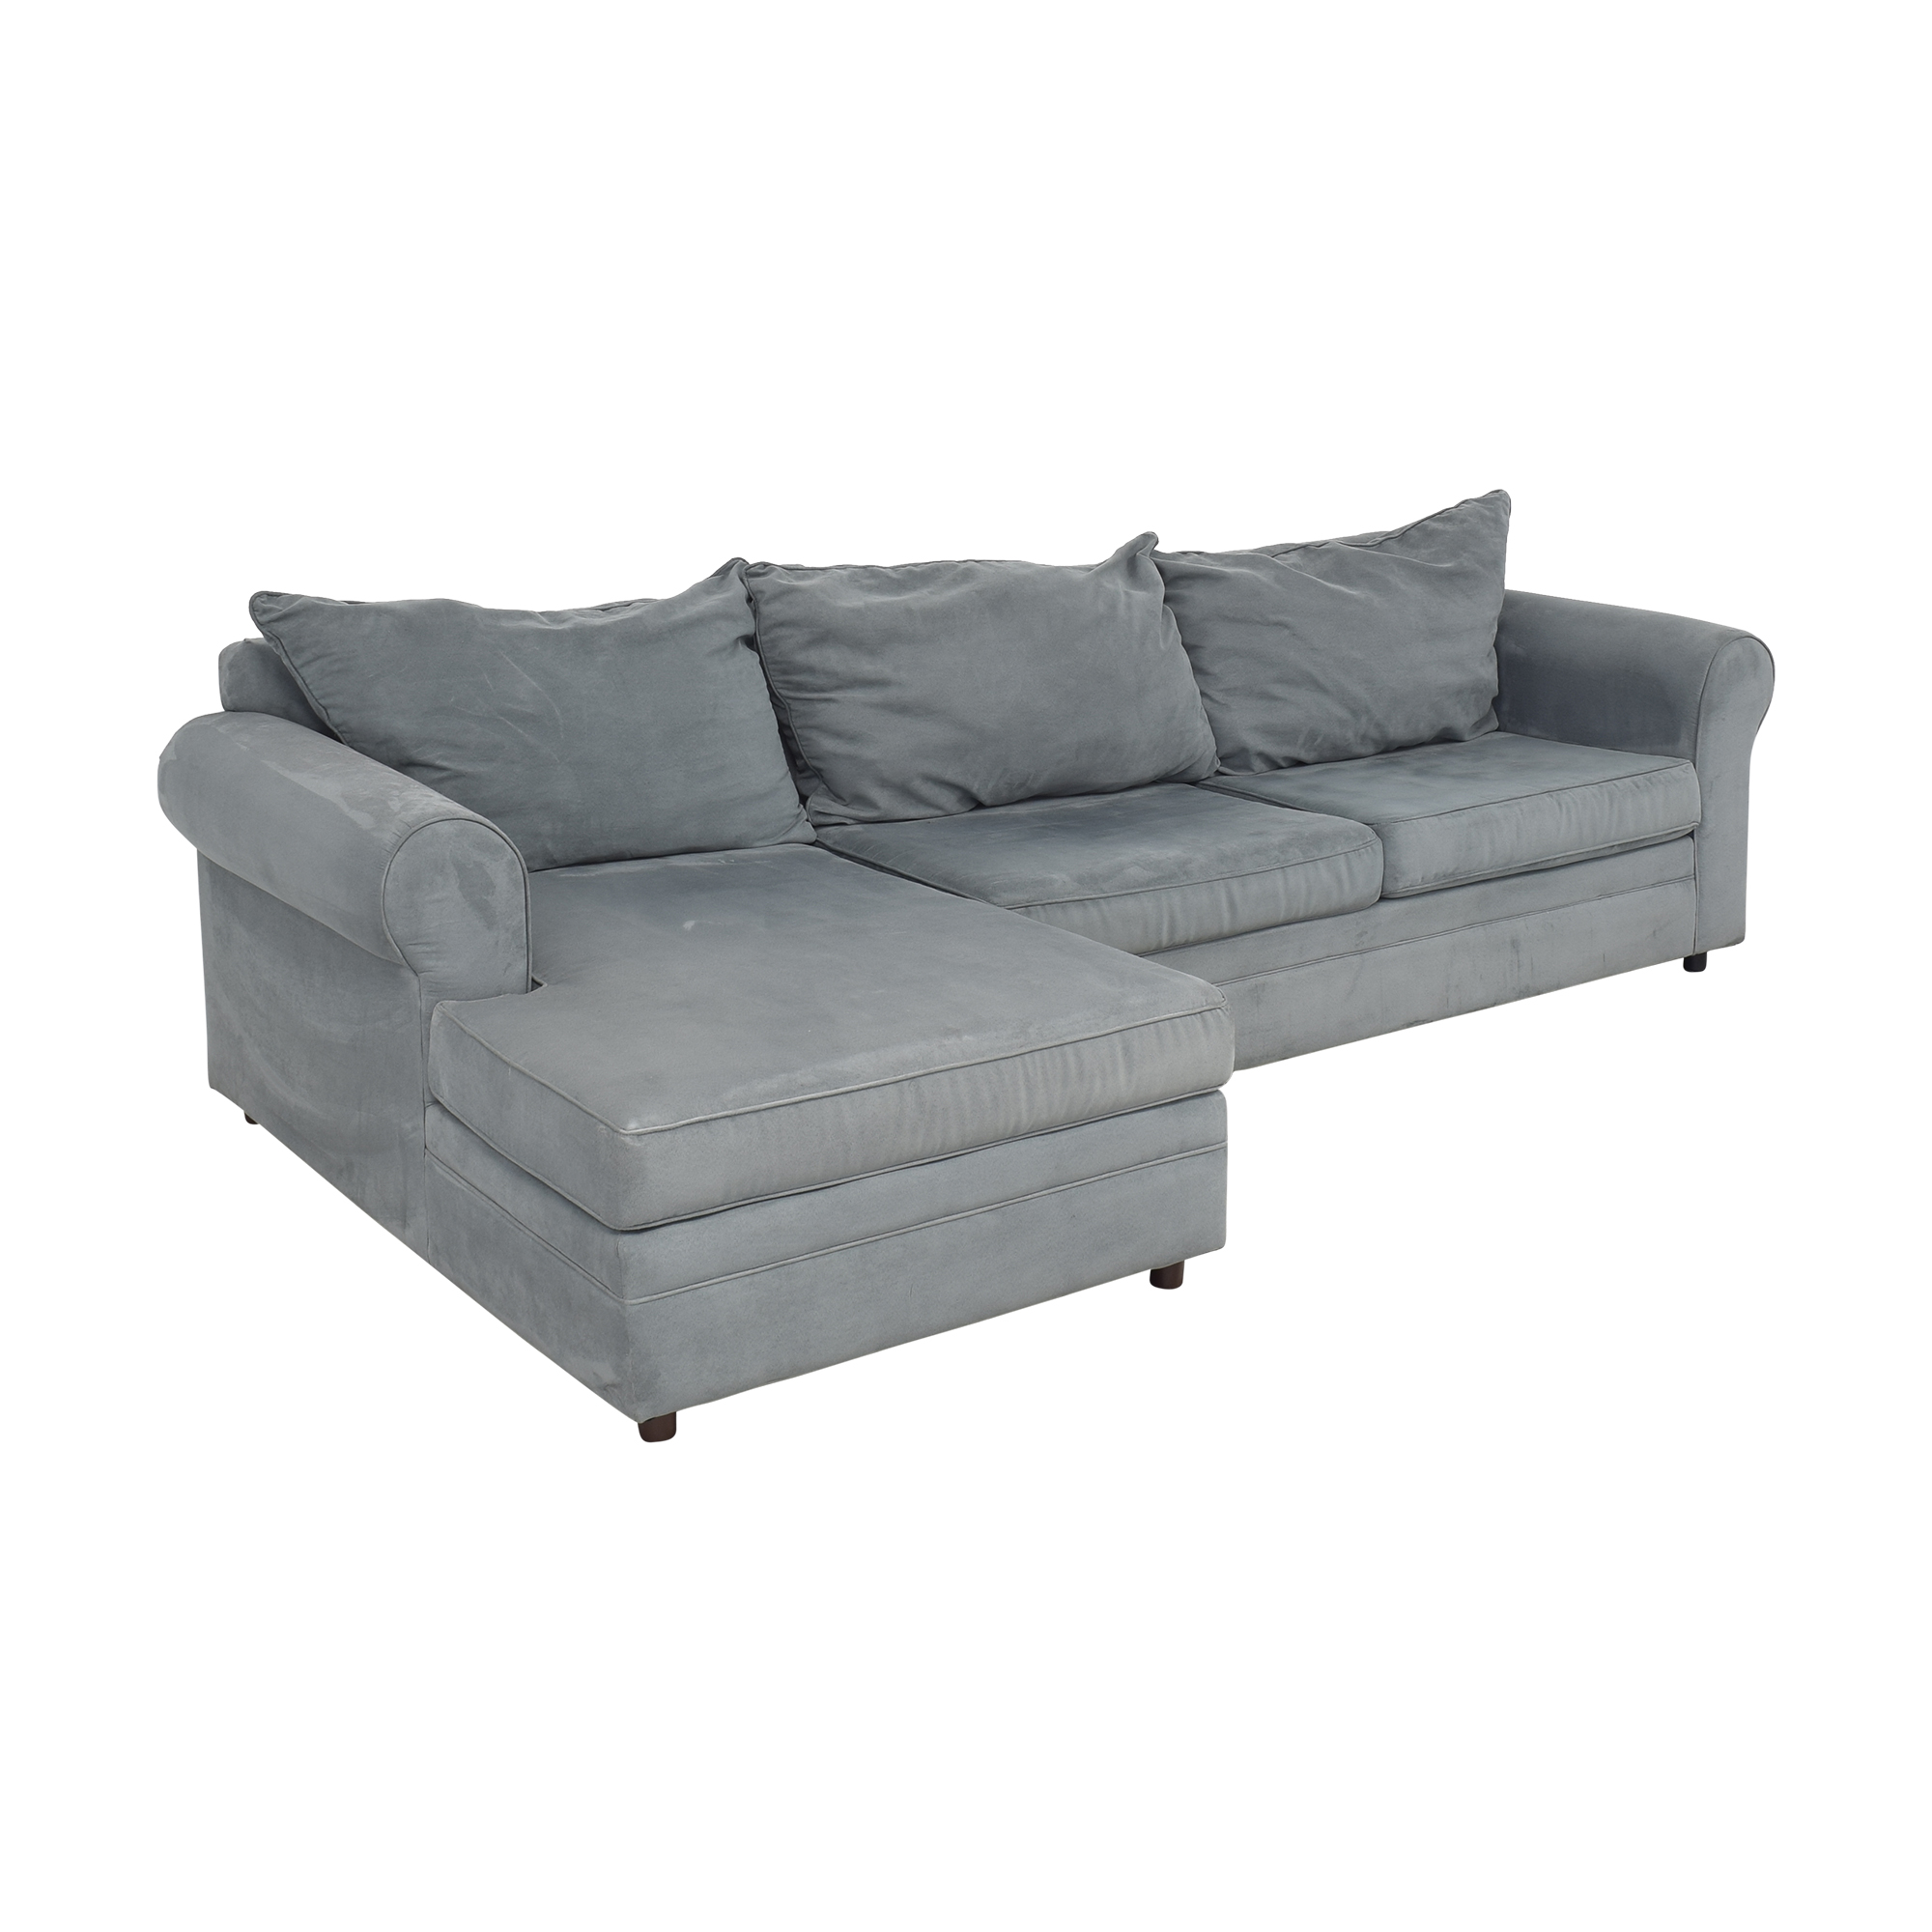 May Furniture May Furniture 2-Piece Sectional Sofa